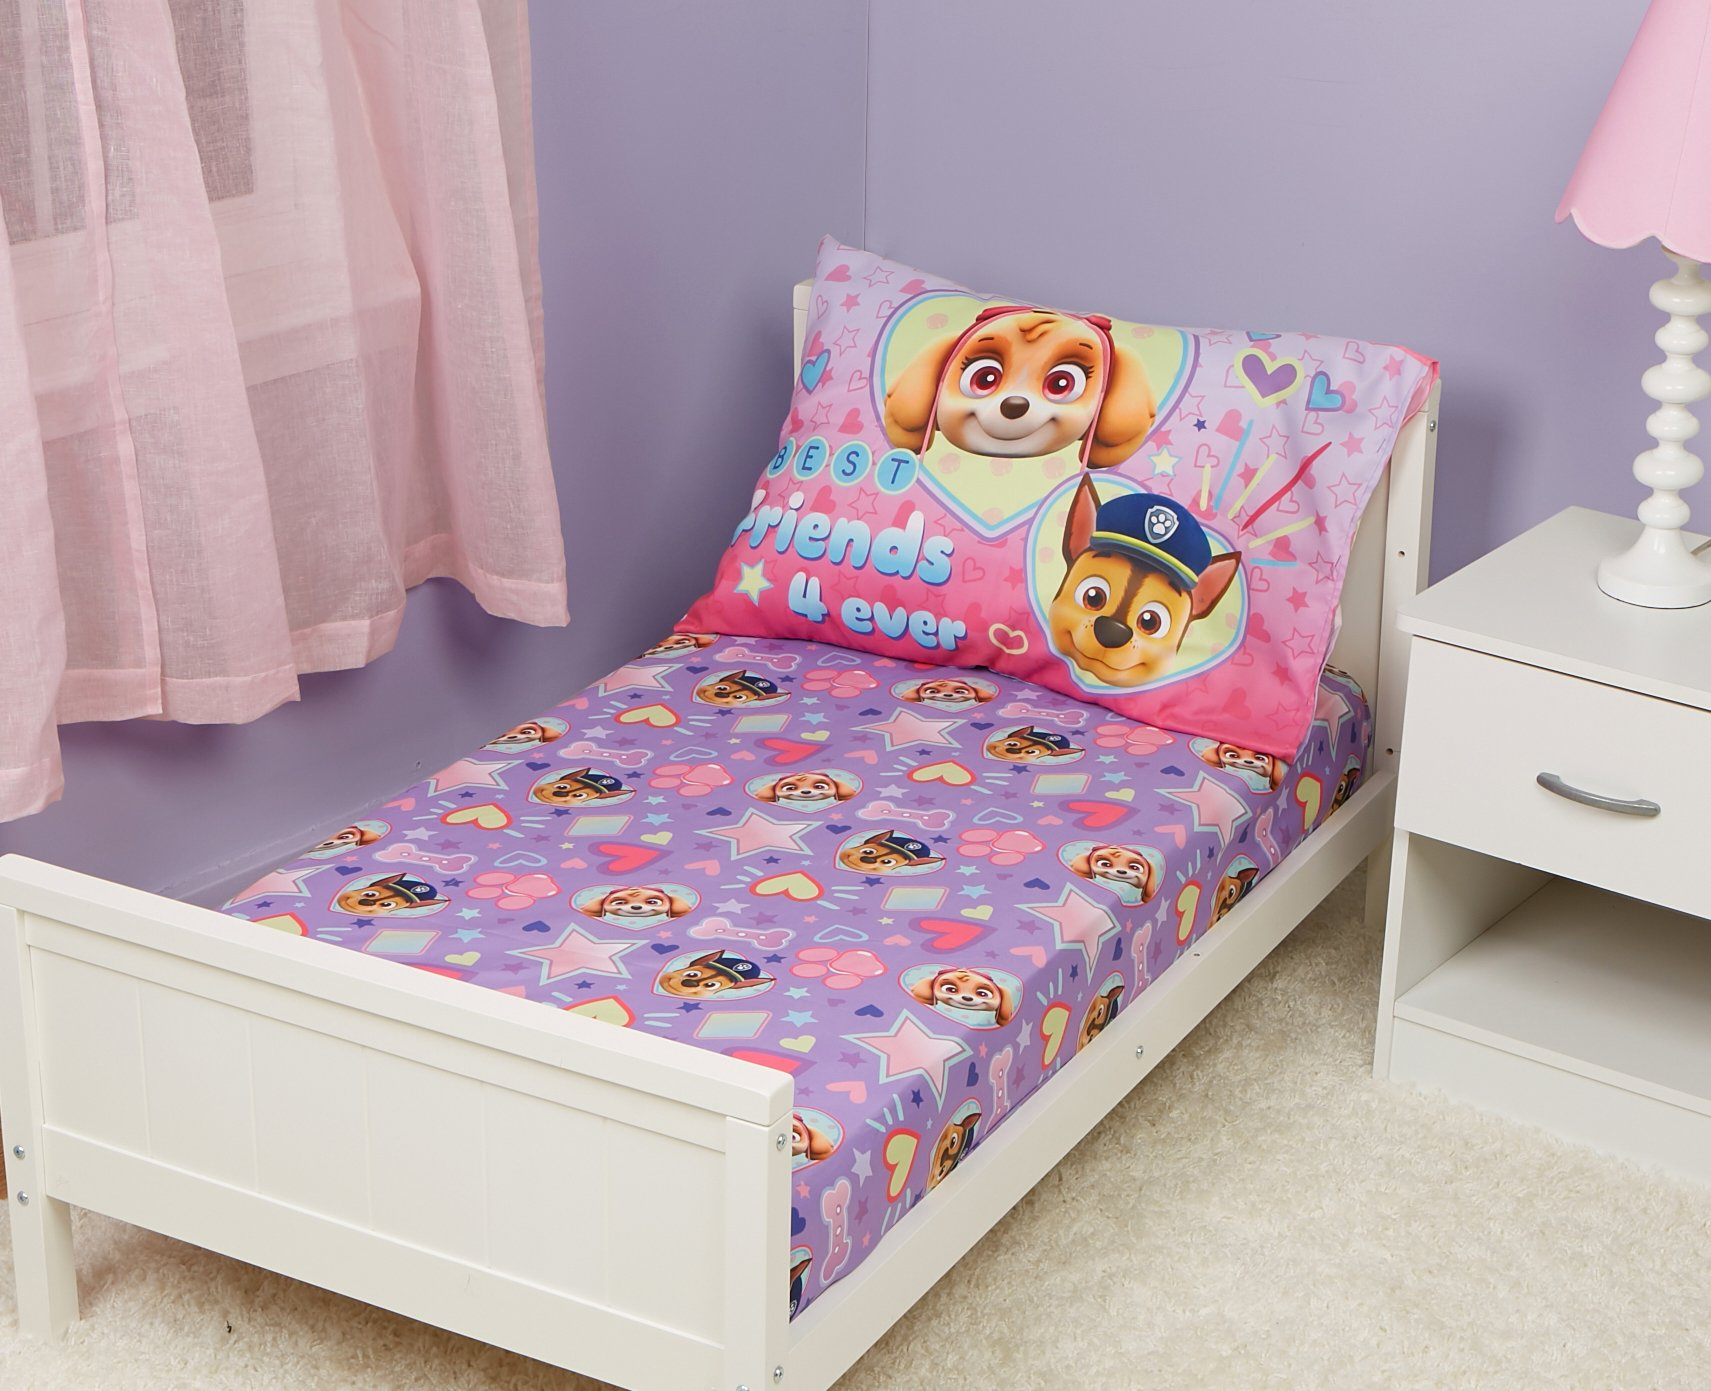 Amazon.com : Paw Patrol Toddler Fitted Sheet and Pillow ...